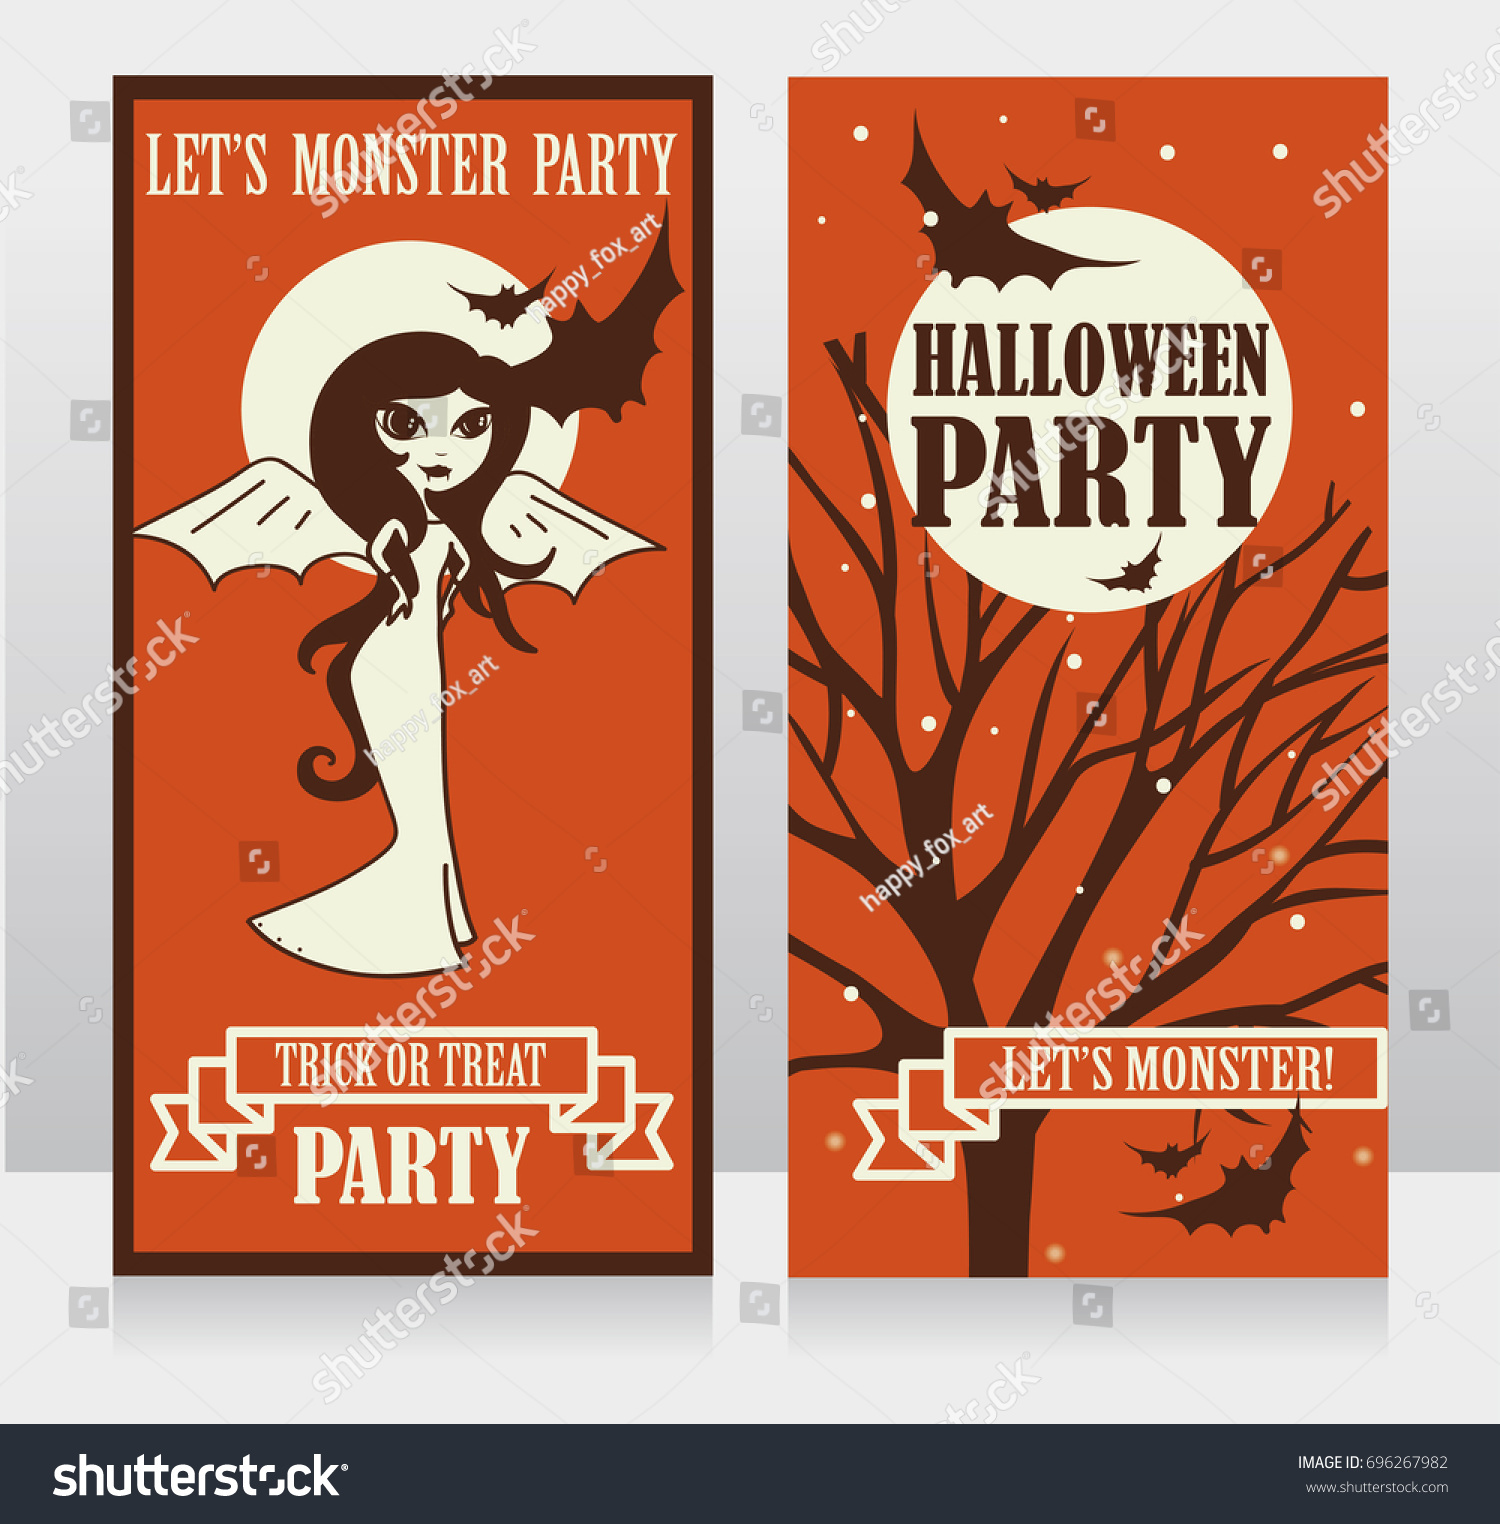 Dorable Halloween Party Ideas Invitations Ornament - Invitations and ...